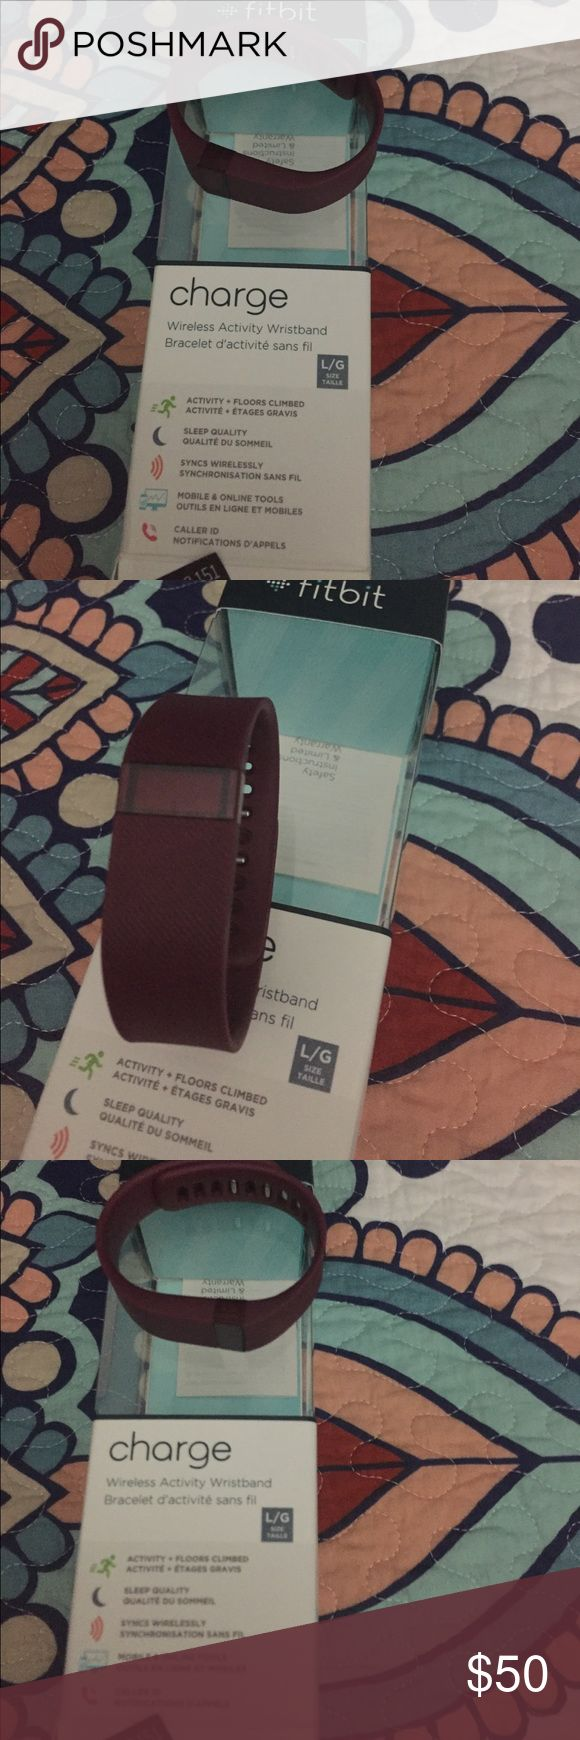 Fitbit charge Burgundy Fitbit charge with box. Worn for a short period of time. Excellent condition! Size large fitbit charge Other